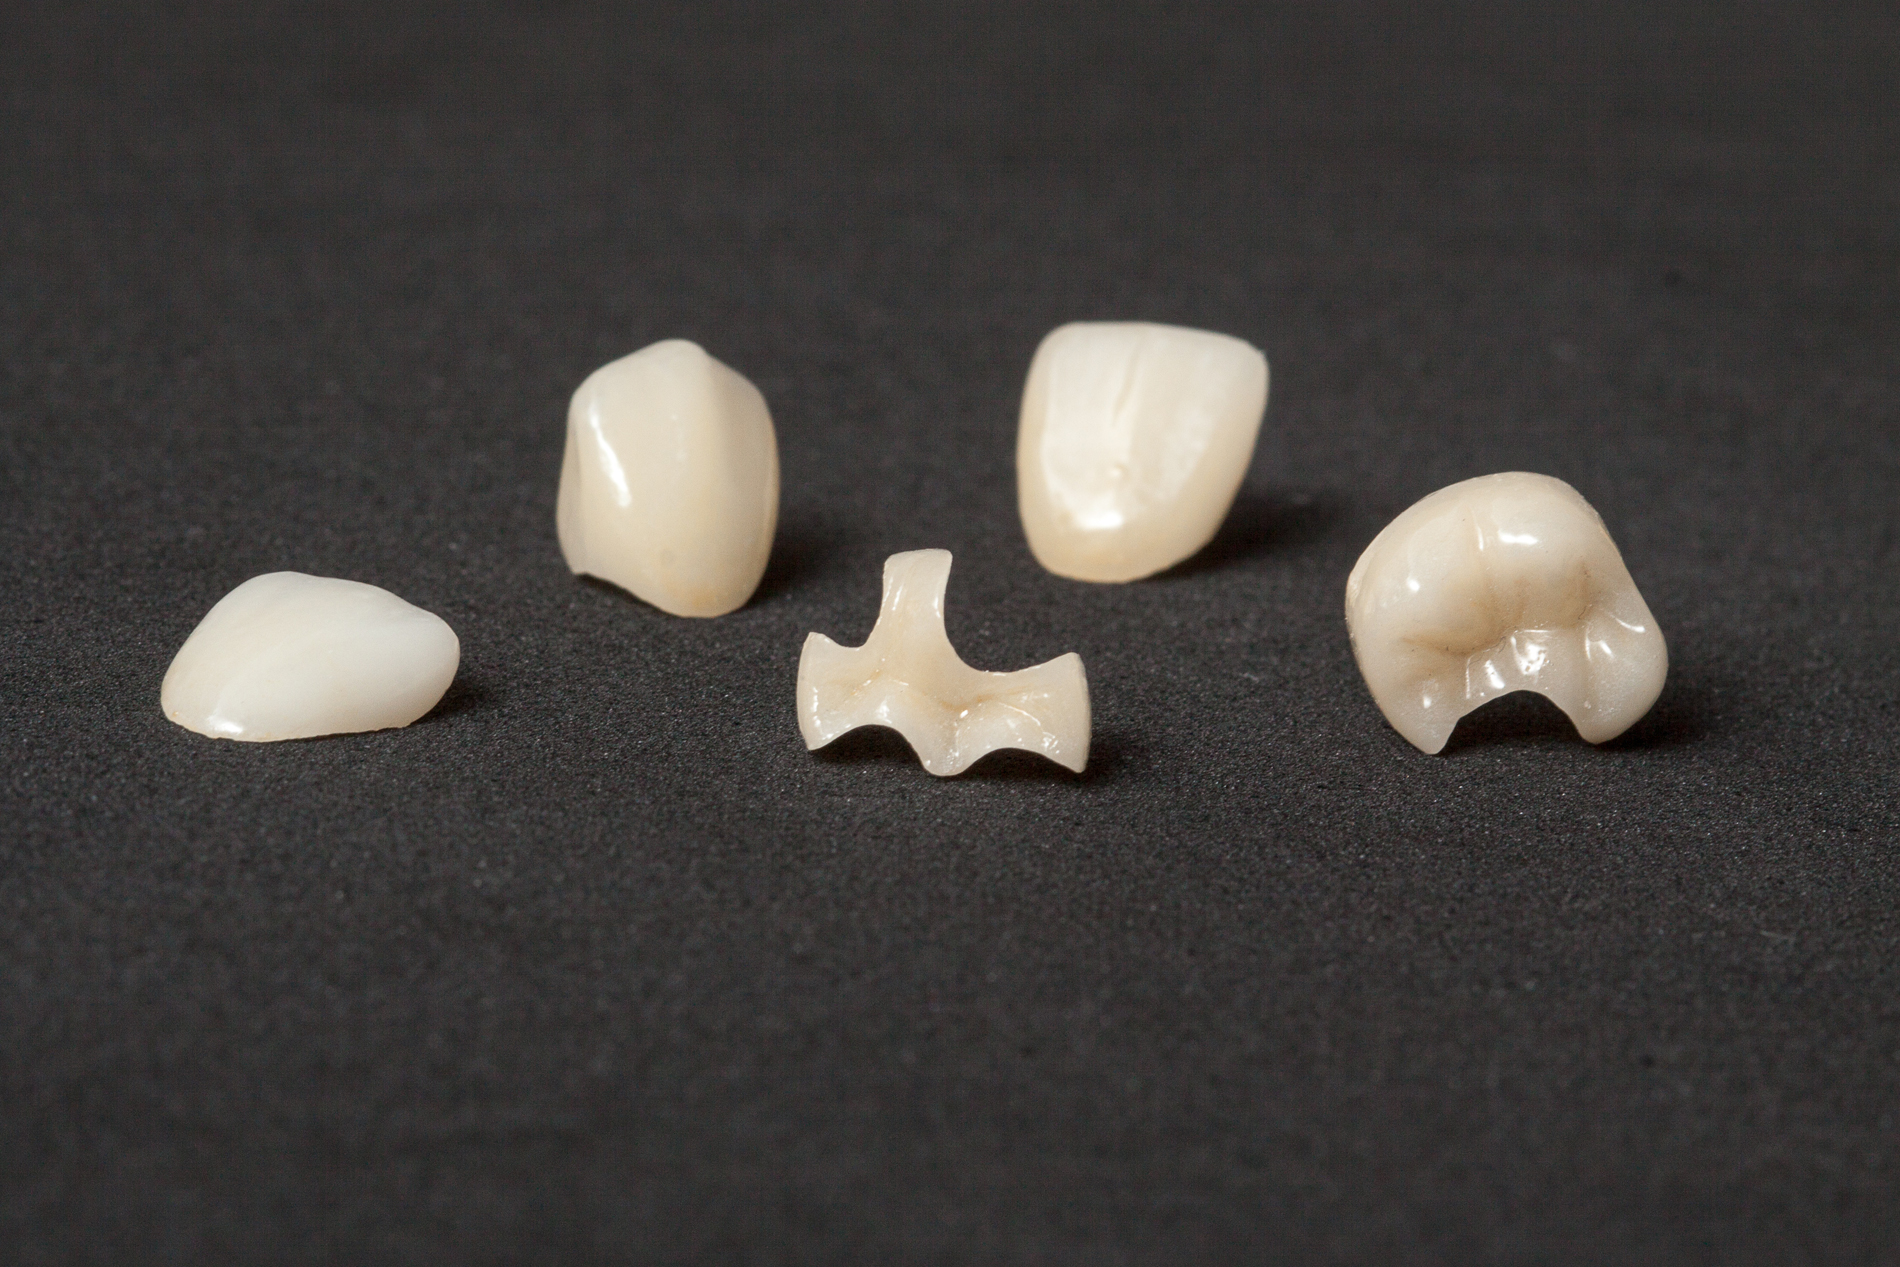 Crowns, inlays and veneers of leucite ceramics